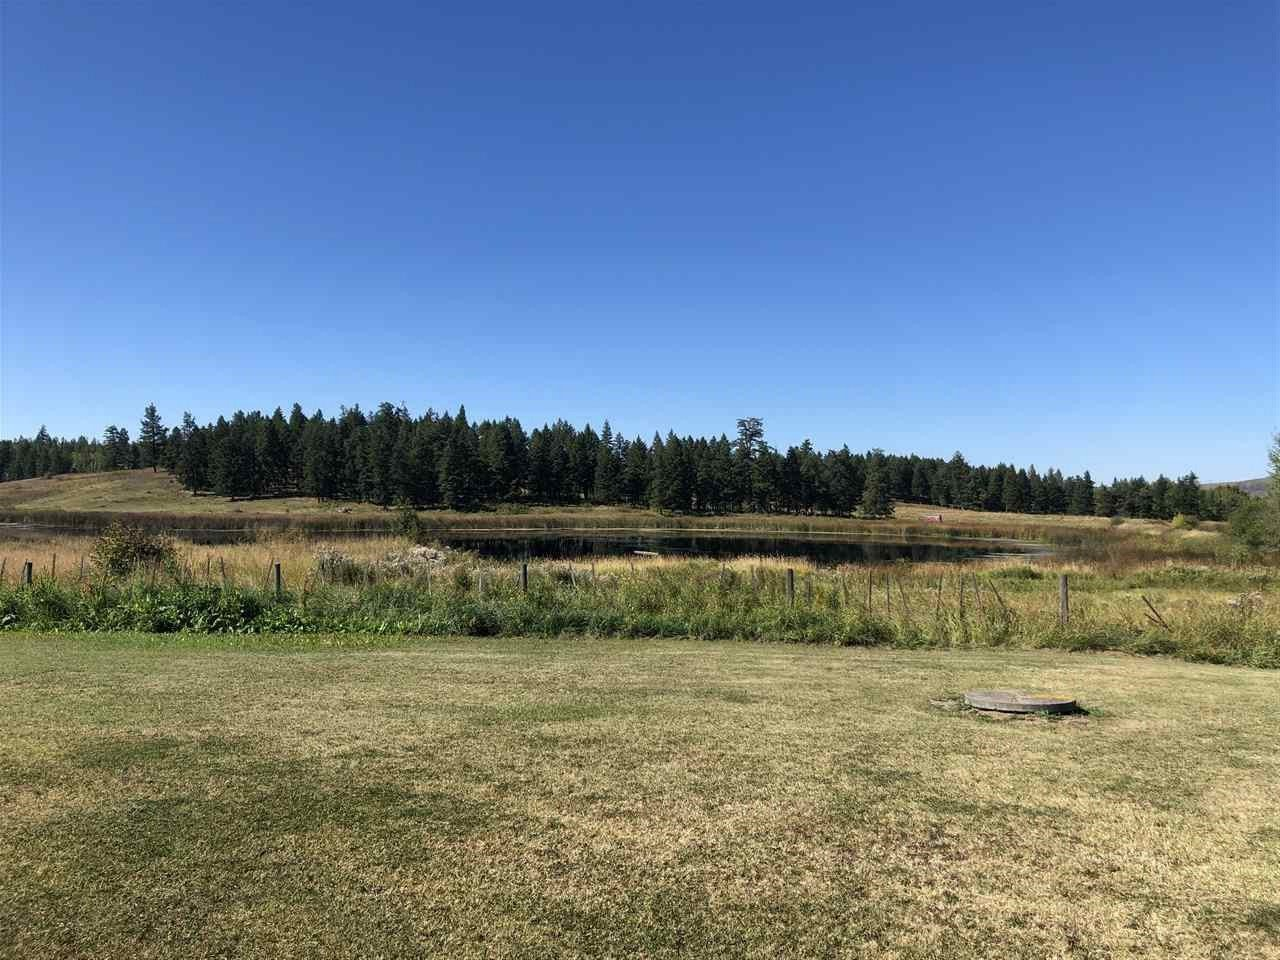 Photo 3: Photos: 3090 150 MILE FRONTAGE Road: 150 Mile House Land Commercial for sale (Williams Lake (Zone 27))  : MLS®# C8034187